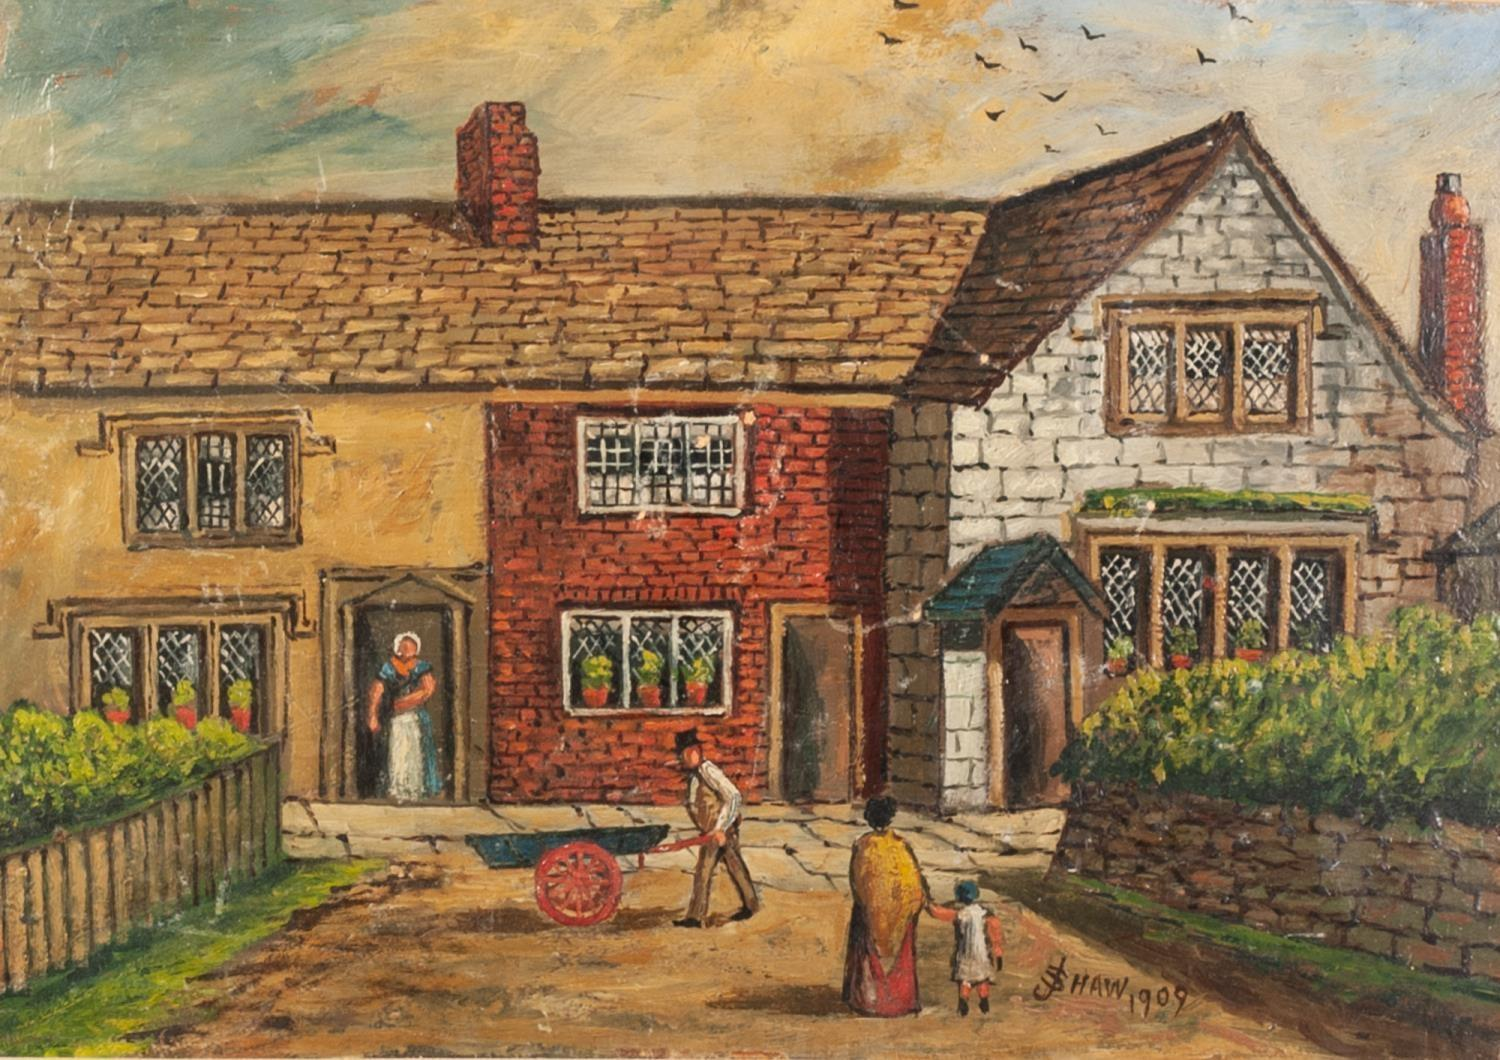 Lot 251 - J SHAW 20th CENTURY OIL PAINTING Bygone street scene, figures by shops and public house top of